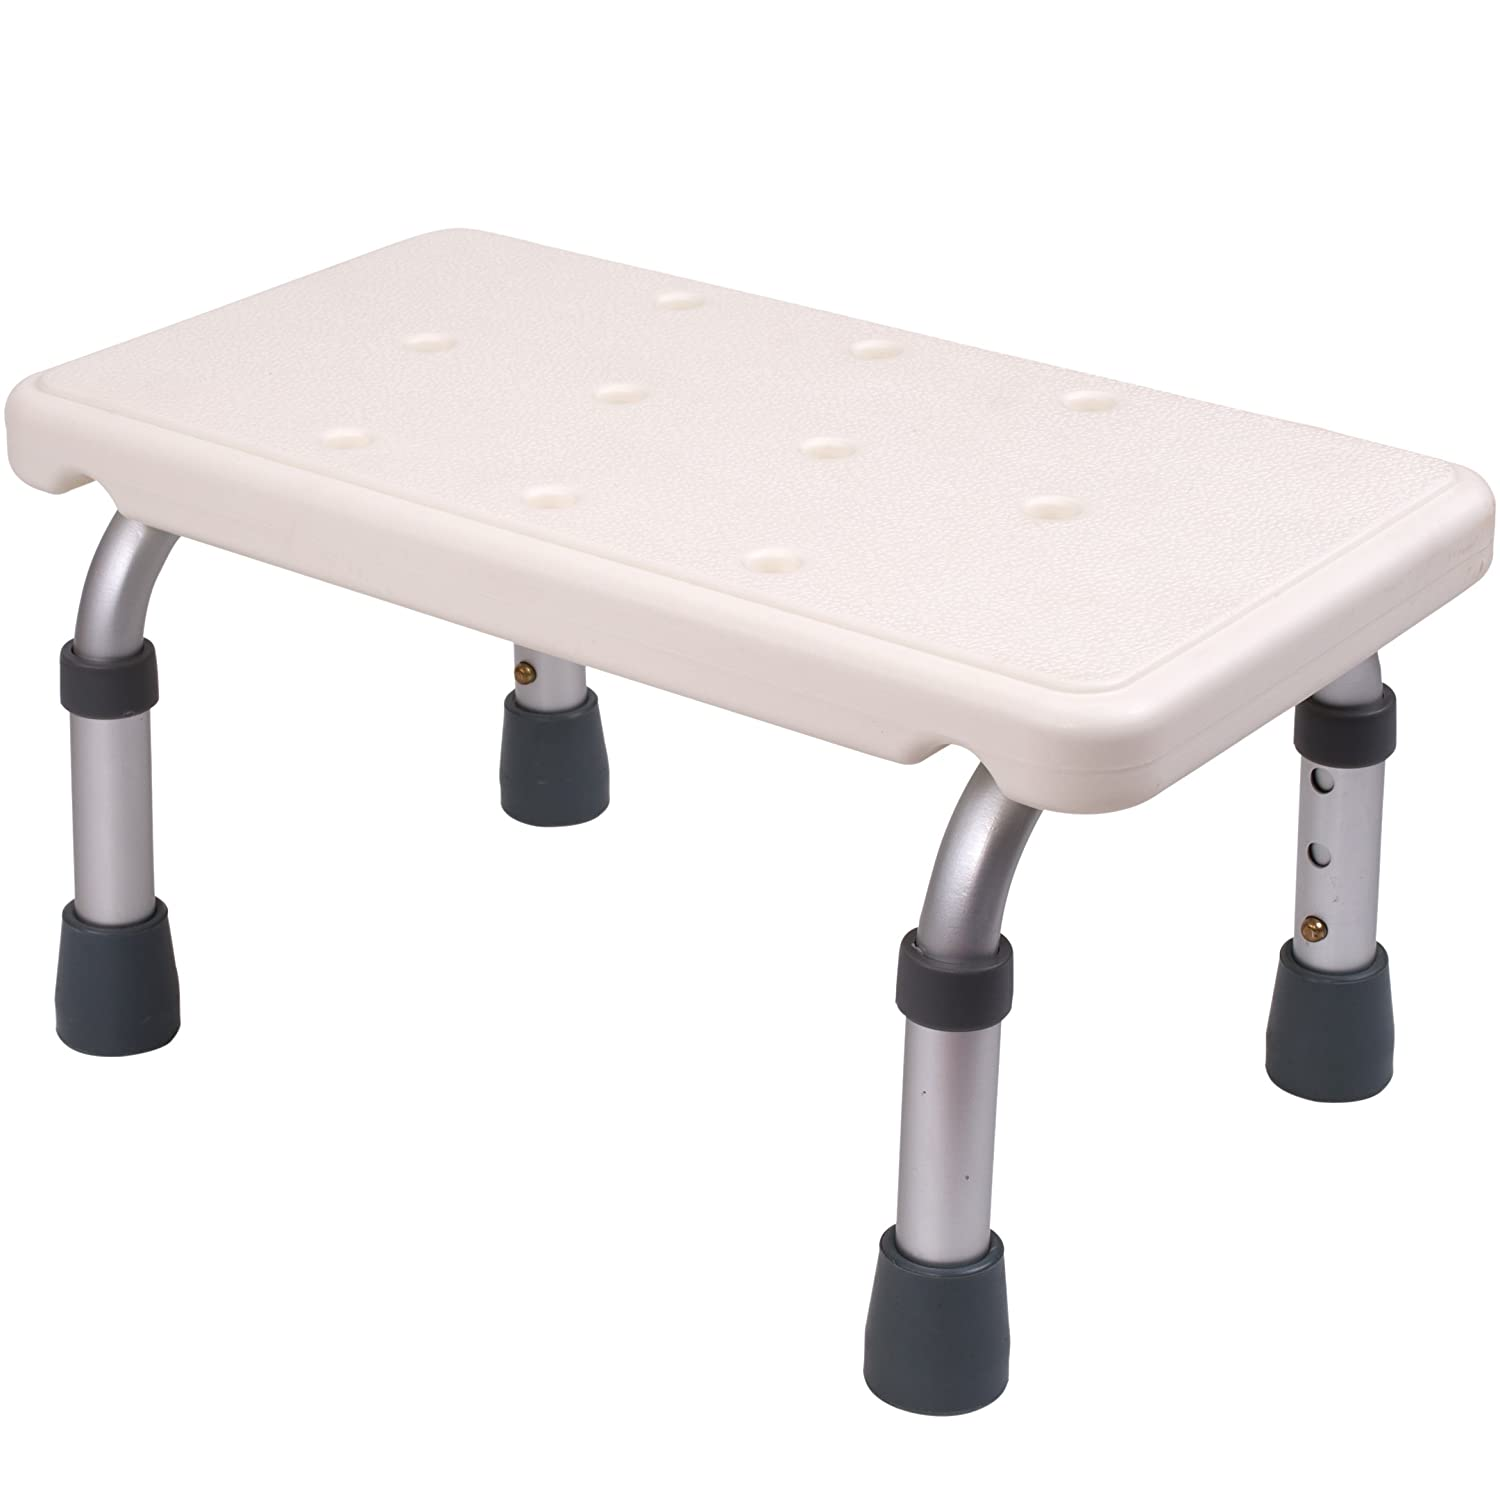 Fantastic Medokare Adjustable Foot Stool Stepping Stool For Adults And Children Bedside High Bed Step For Seniors Foot Stool Under Desk Heavy Duty Portable Machost Co Dining Chair Design Ideas Machostcouk